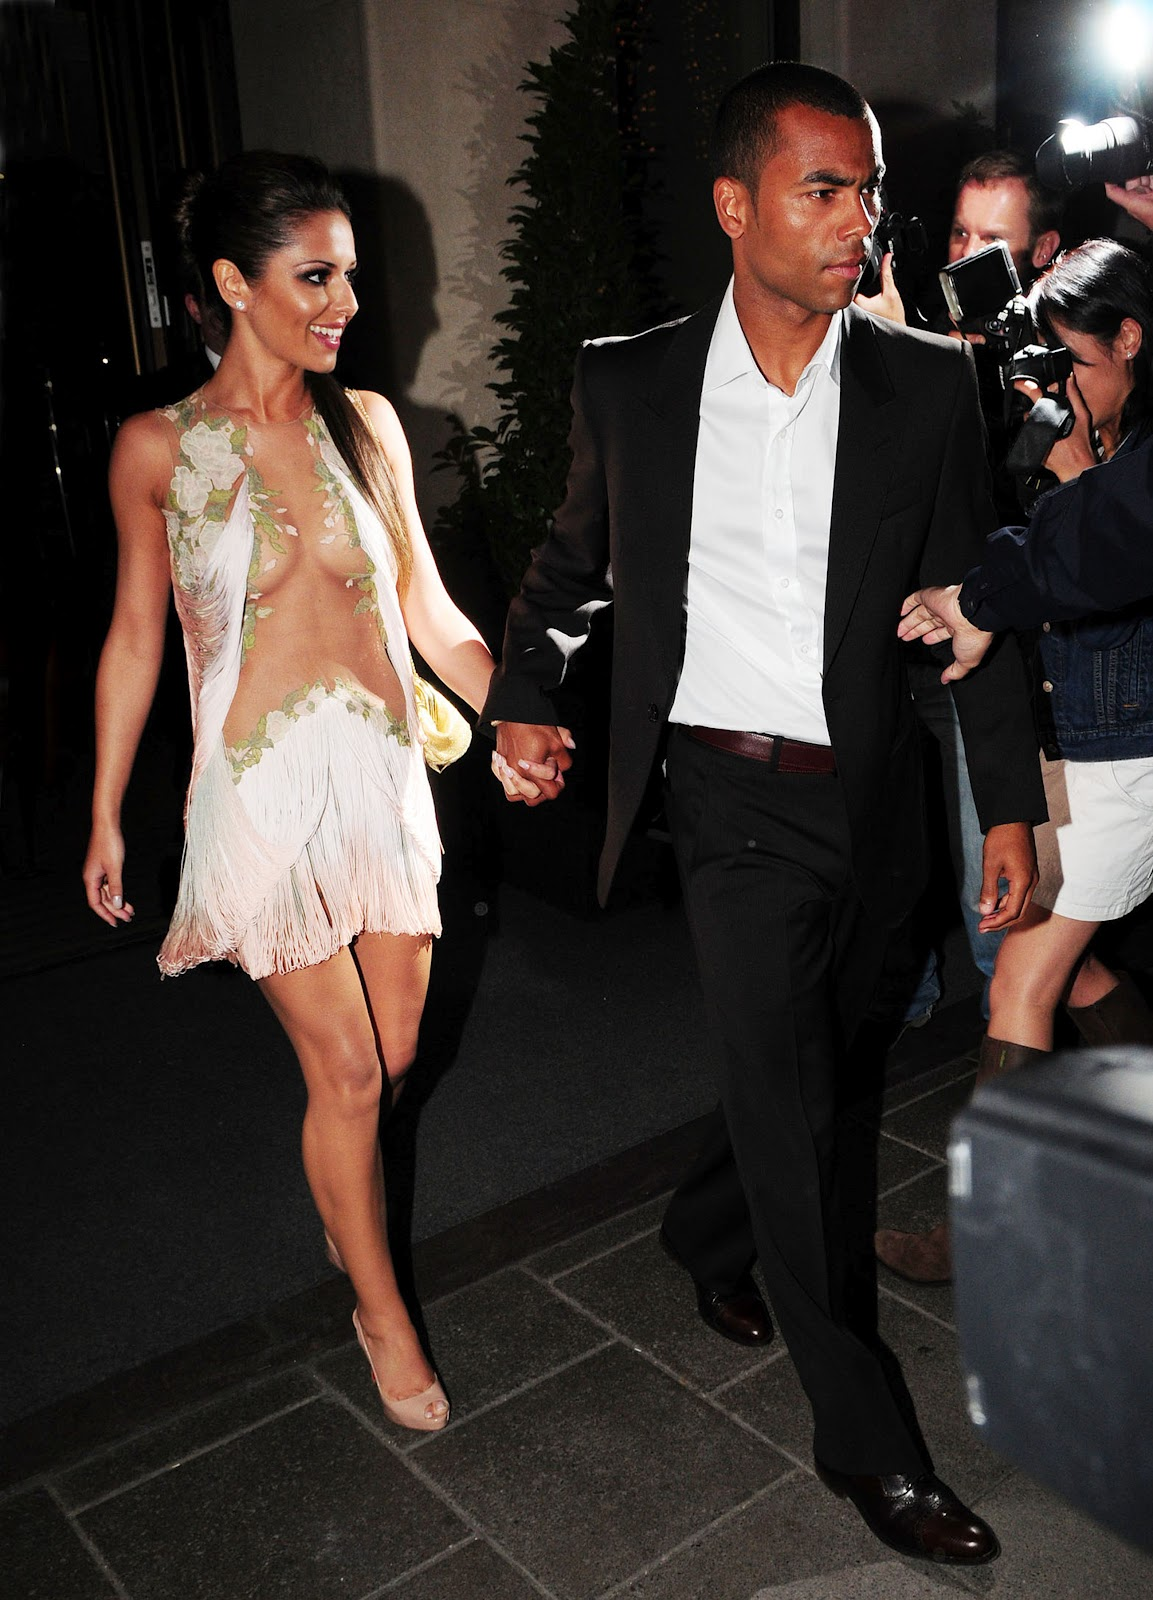 All stars cheryl cole and her husband ashley cole pictures in 2012